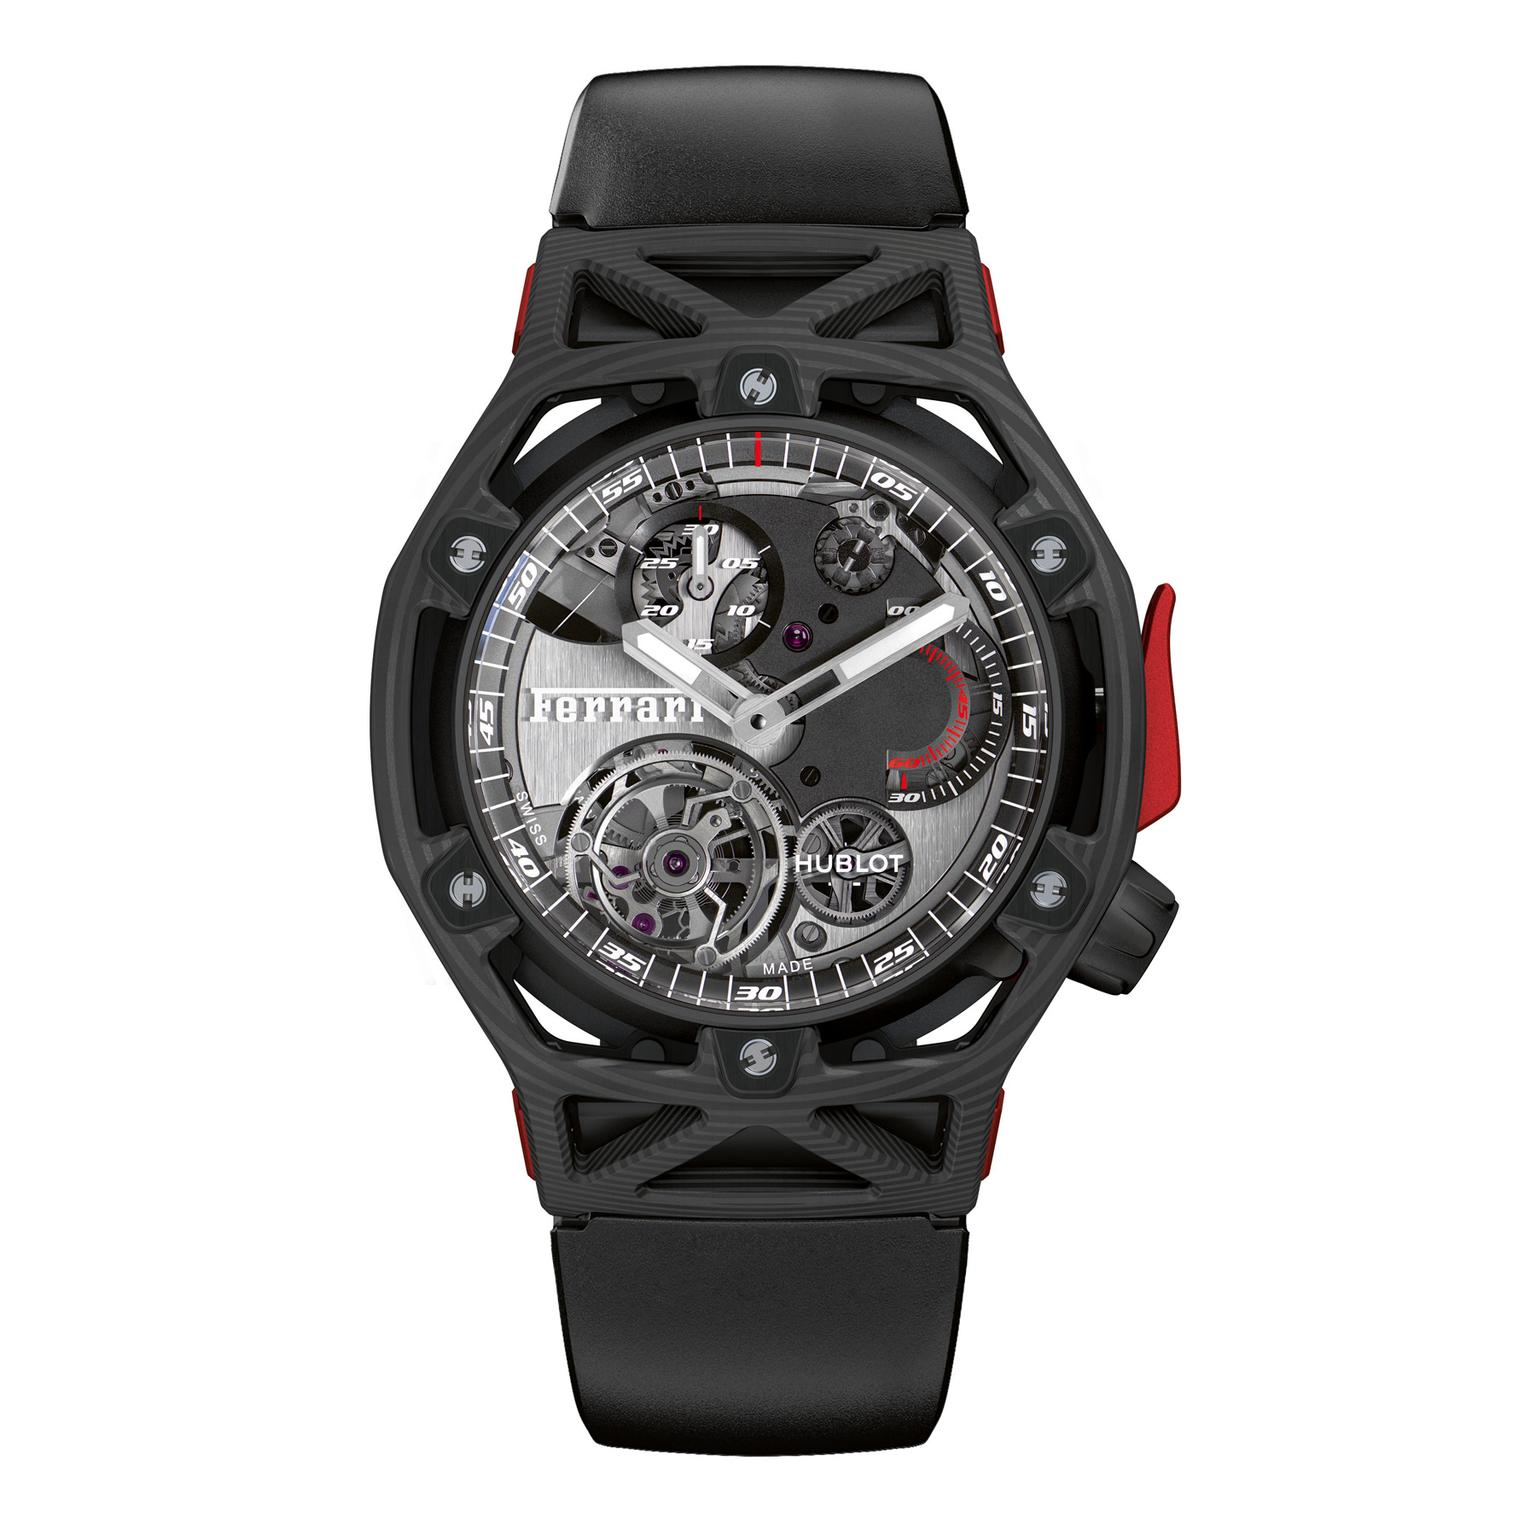 Hublot Techframe Ferrari 70 Years Tourbillon Chronograph watch